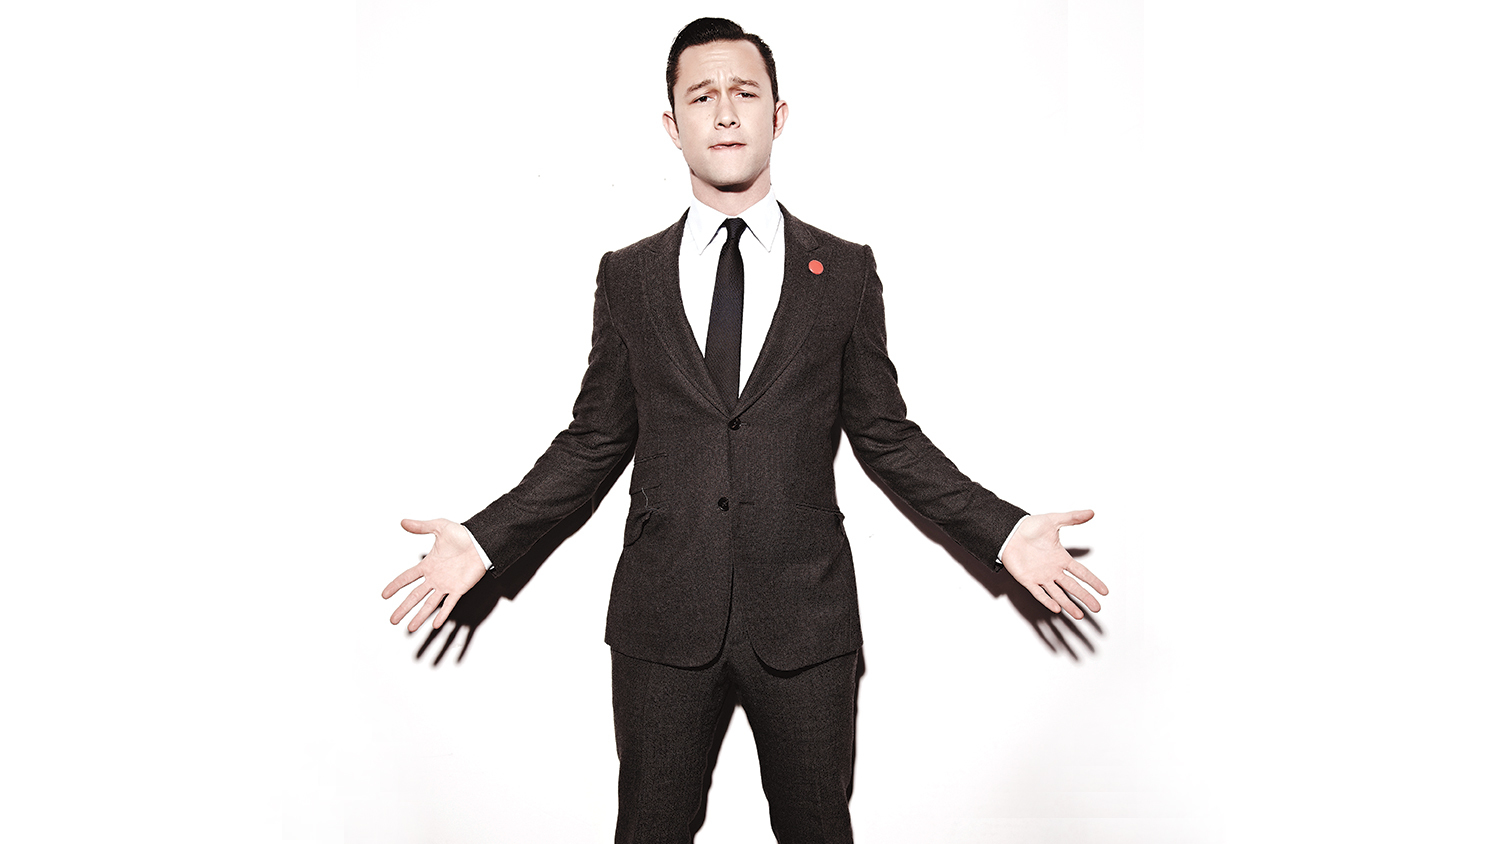 Joseph Gordon-Levitt on finding his balance, playing Snowden and annoying his neighbors